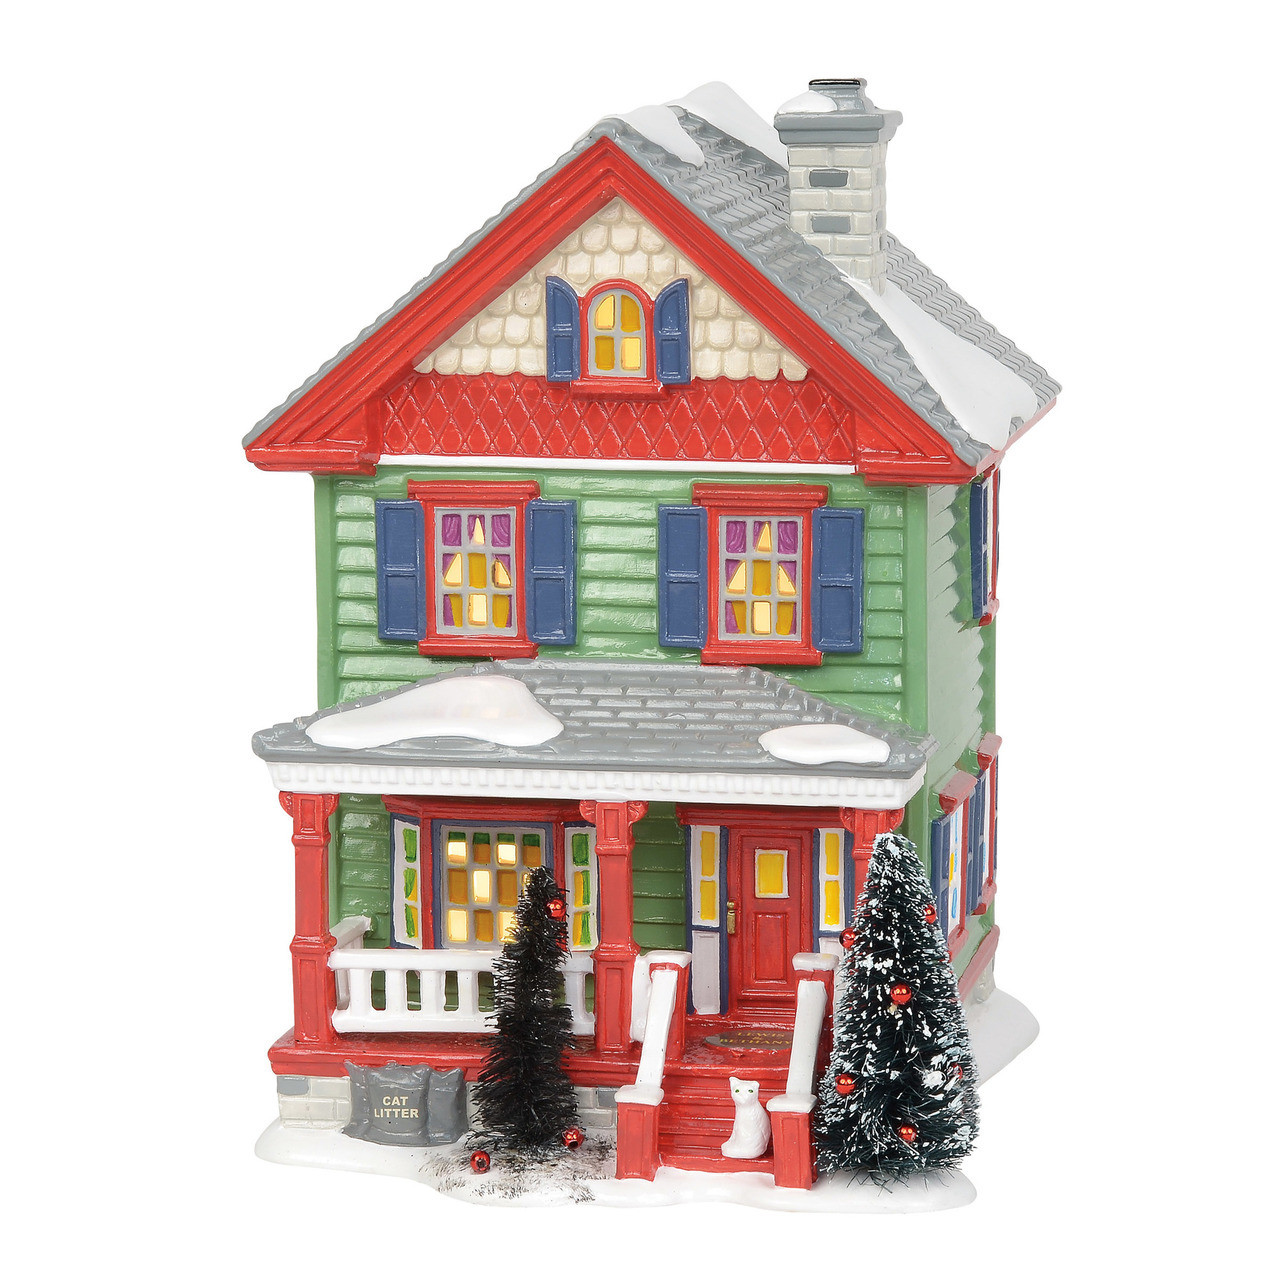 Christmas Houses Village.Department 56 Christmas Vacation Village Aunt Bethany S House Building 6003132